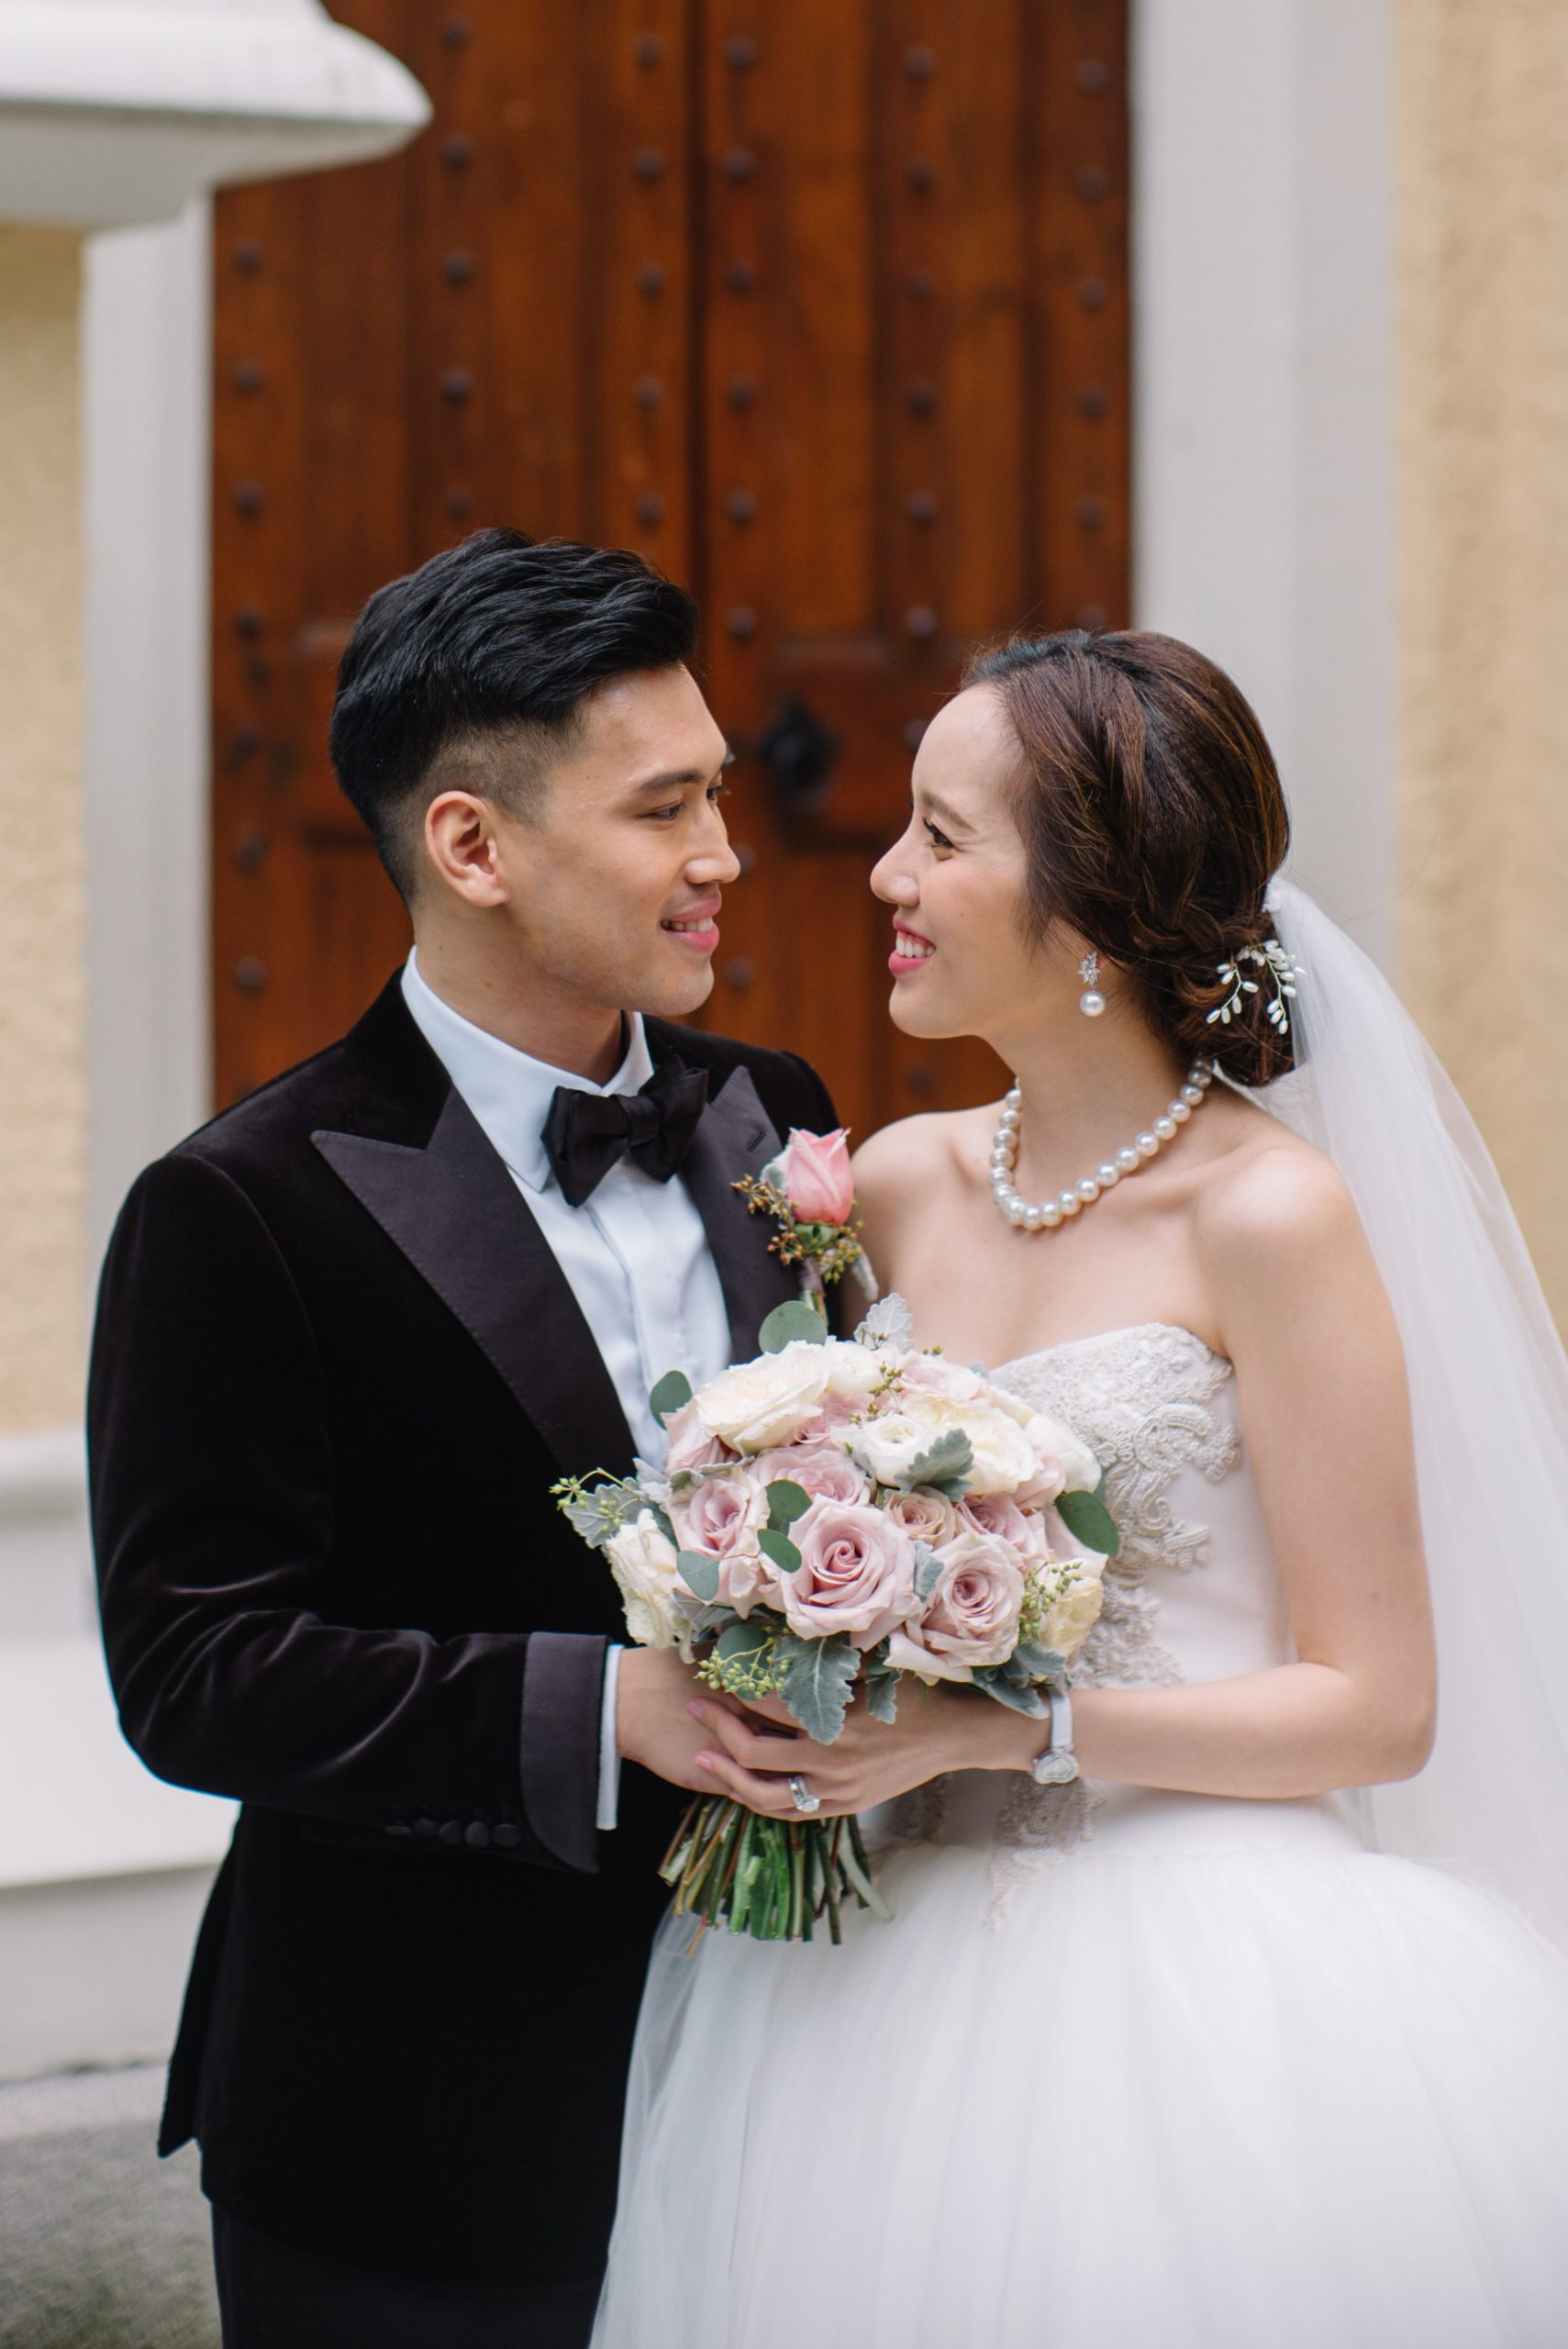 Jessica Jann Kenneth King love story 2